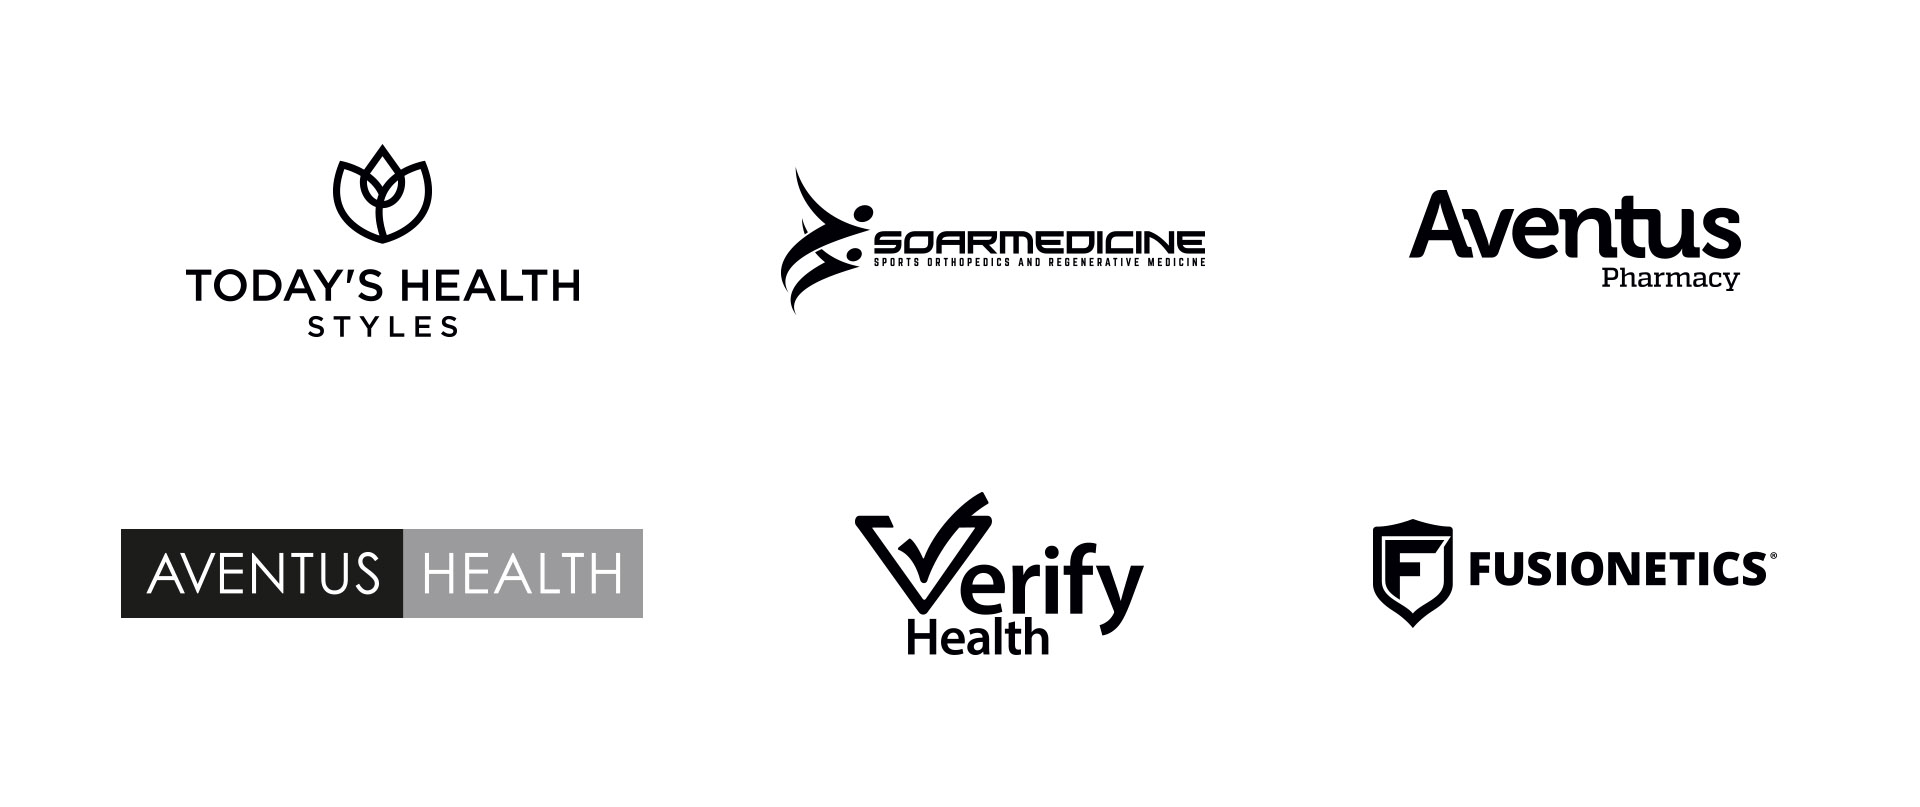 Logos for the website MOBILE health and wellness